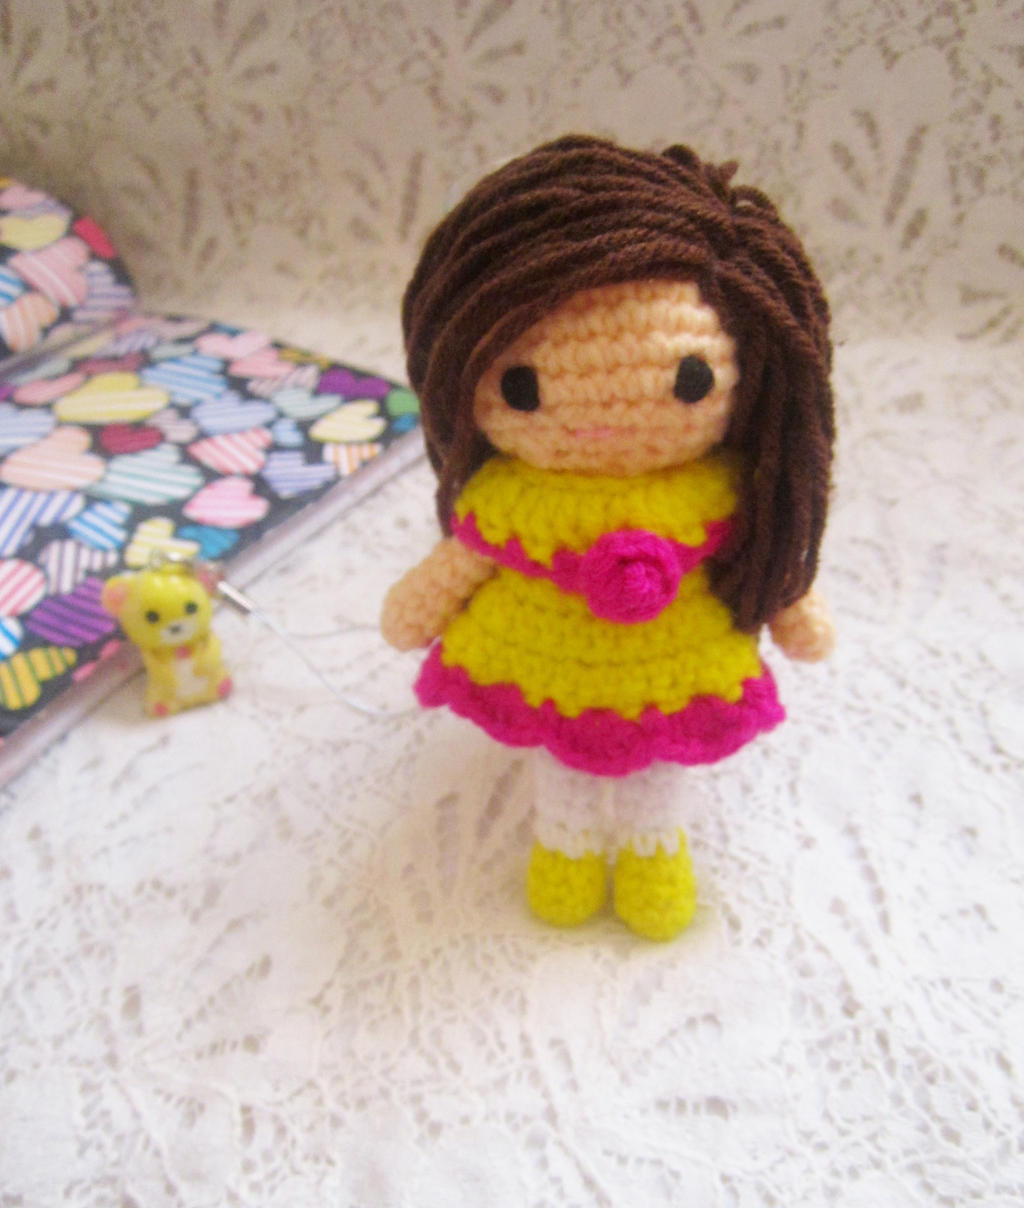 All Free Amigurumi Patterns : Little amigurumi doll free pattern by Anitadoma on DeviantArt